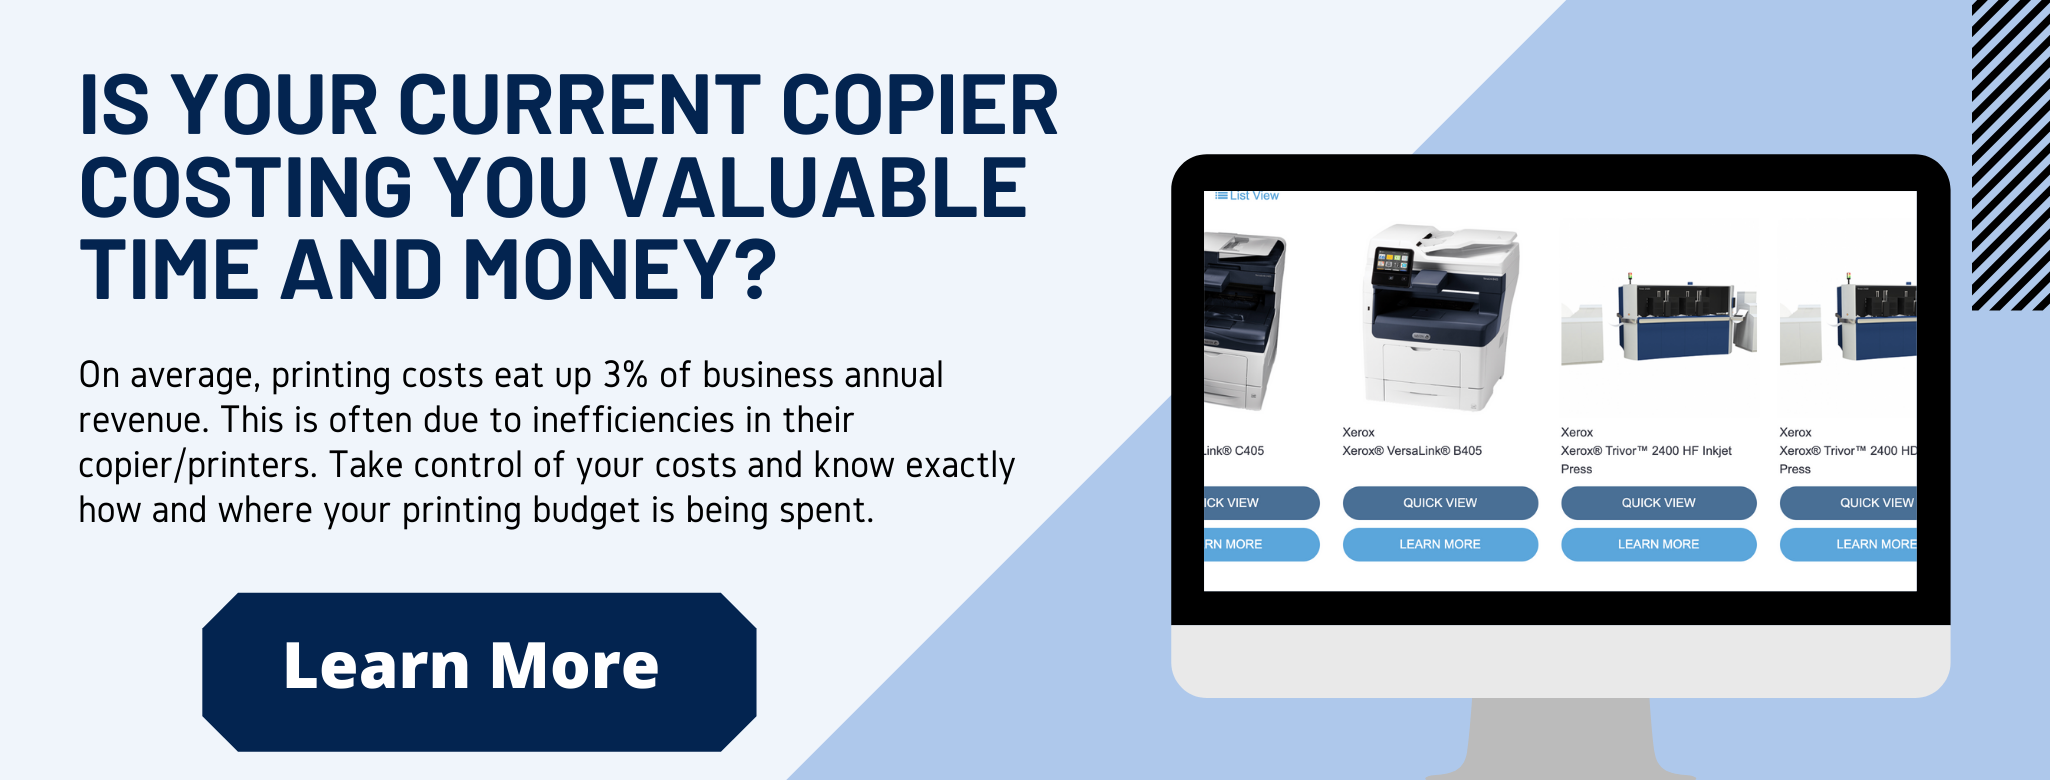 Infographic: Is your current copier costing you valuable time and money?